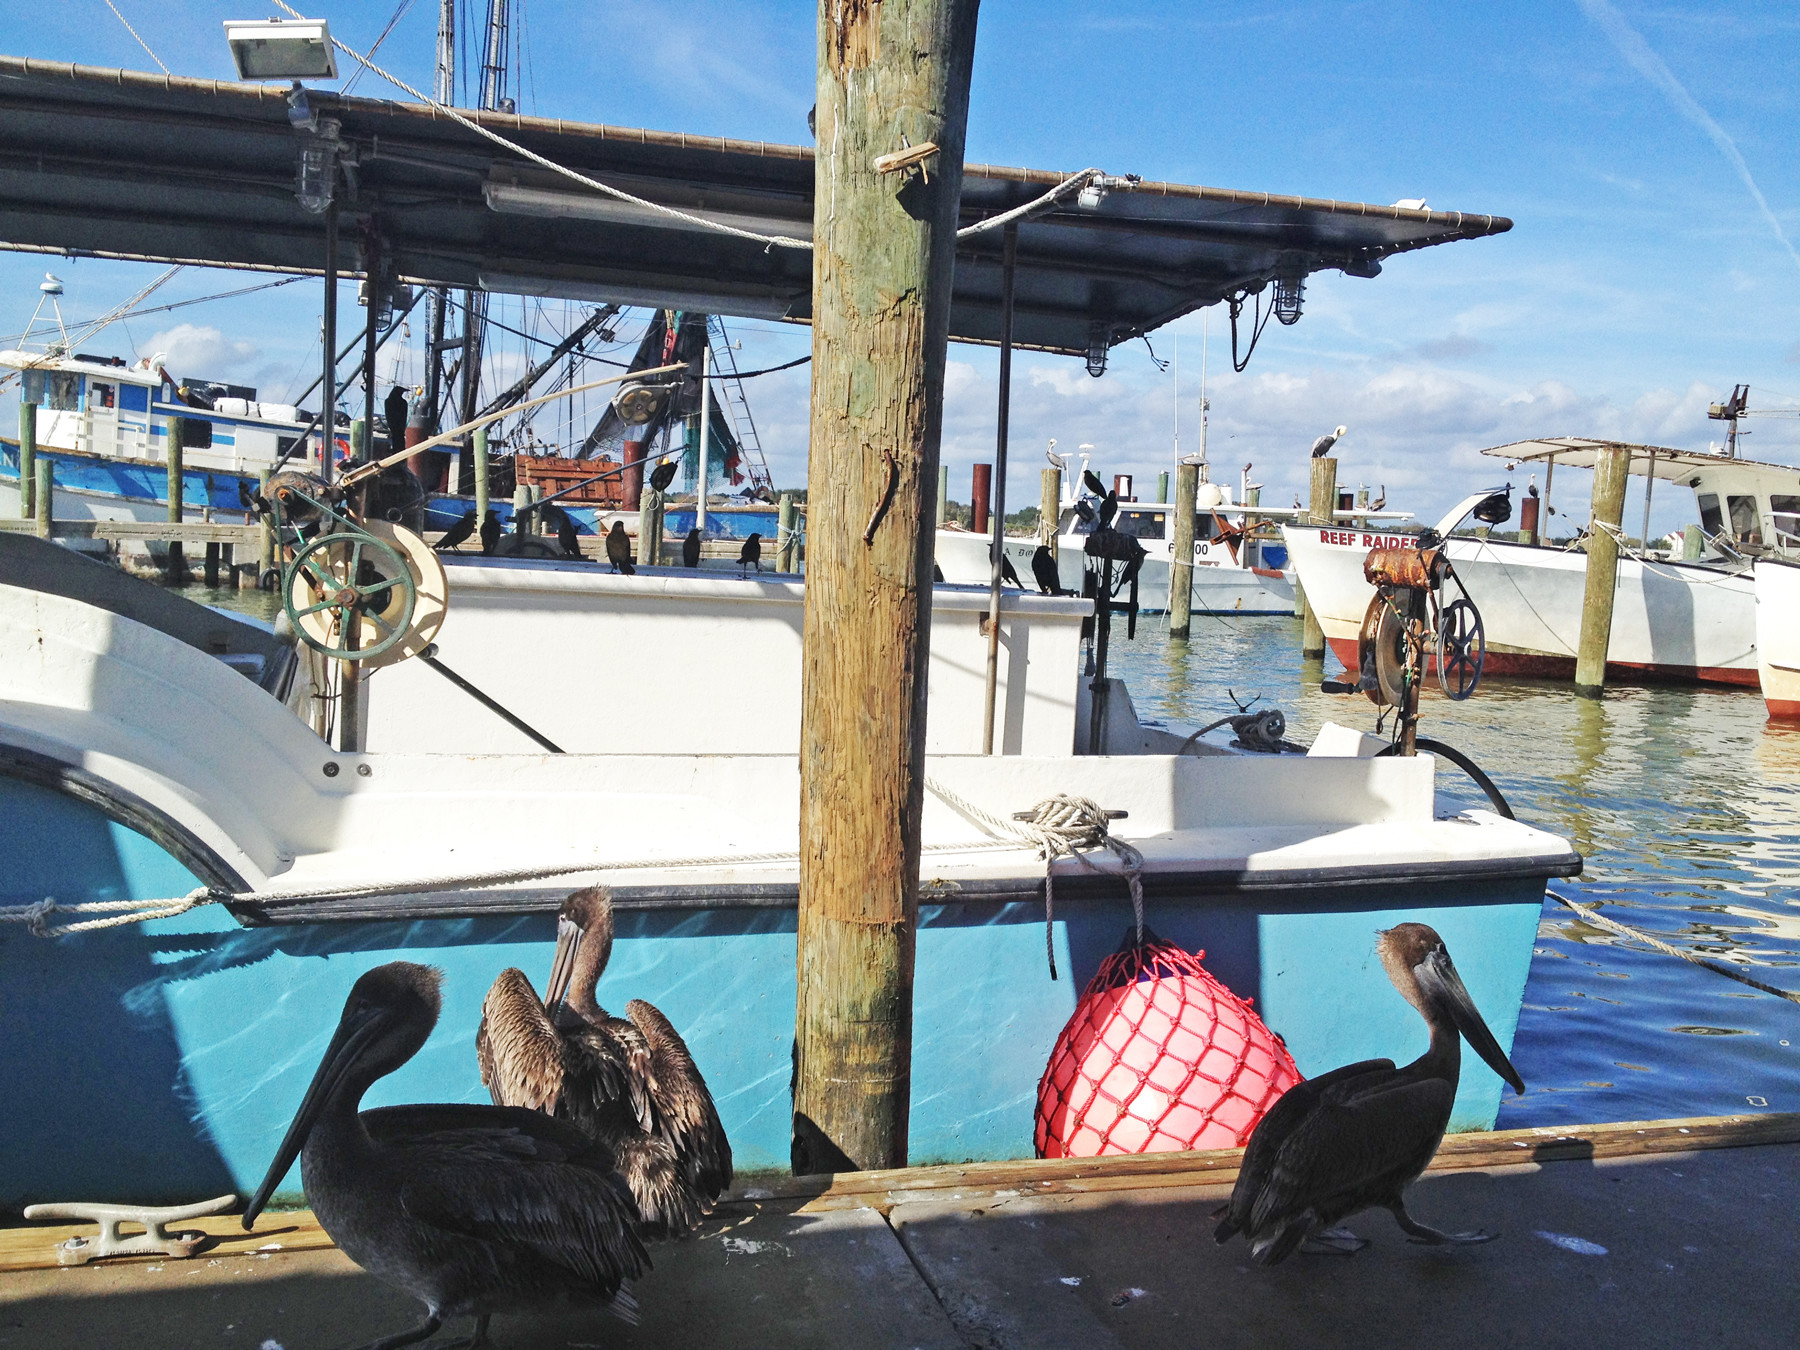 The outdoor deck offers waterfront seating, with great views of birds and boats.